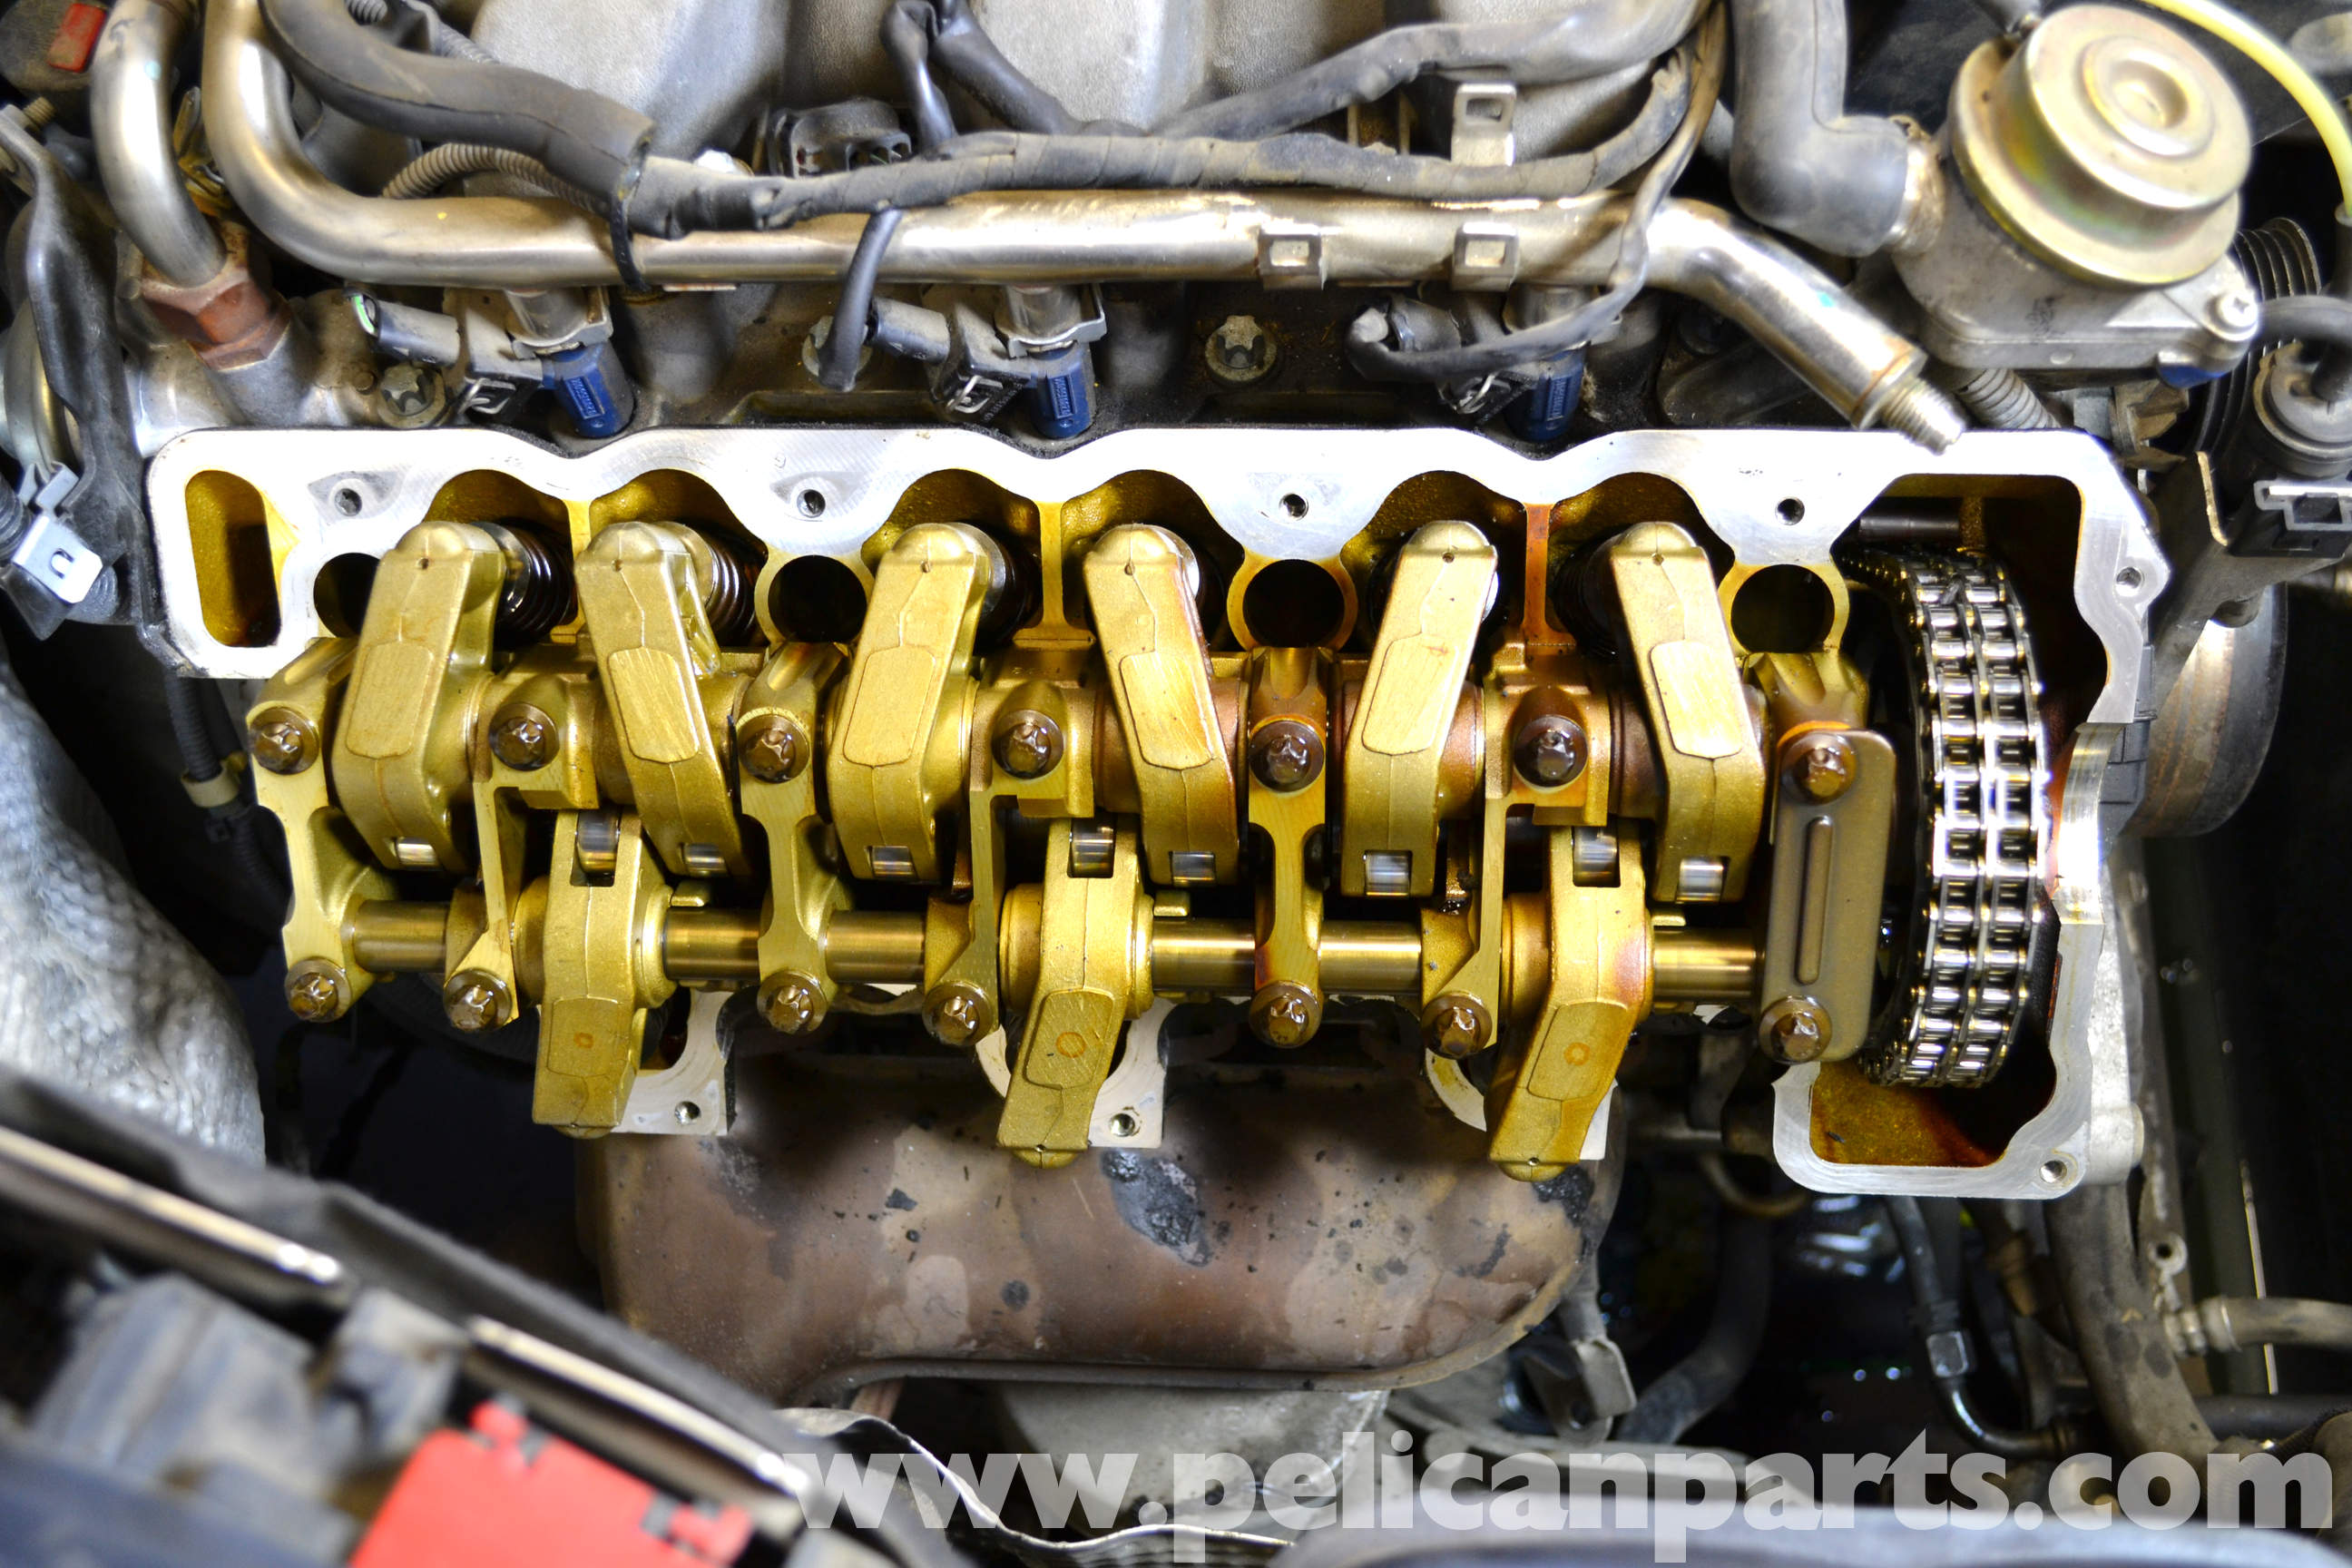 Mercedes Benz W203 Valve Cover Gasket Replacement 2001